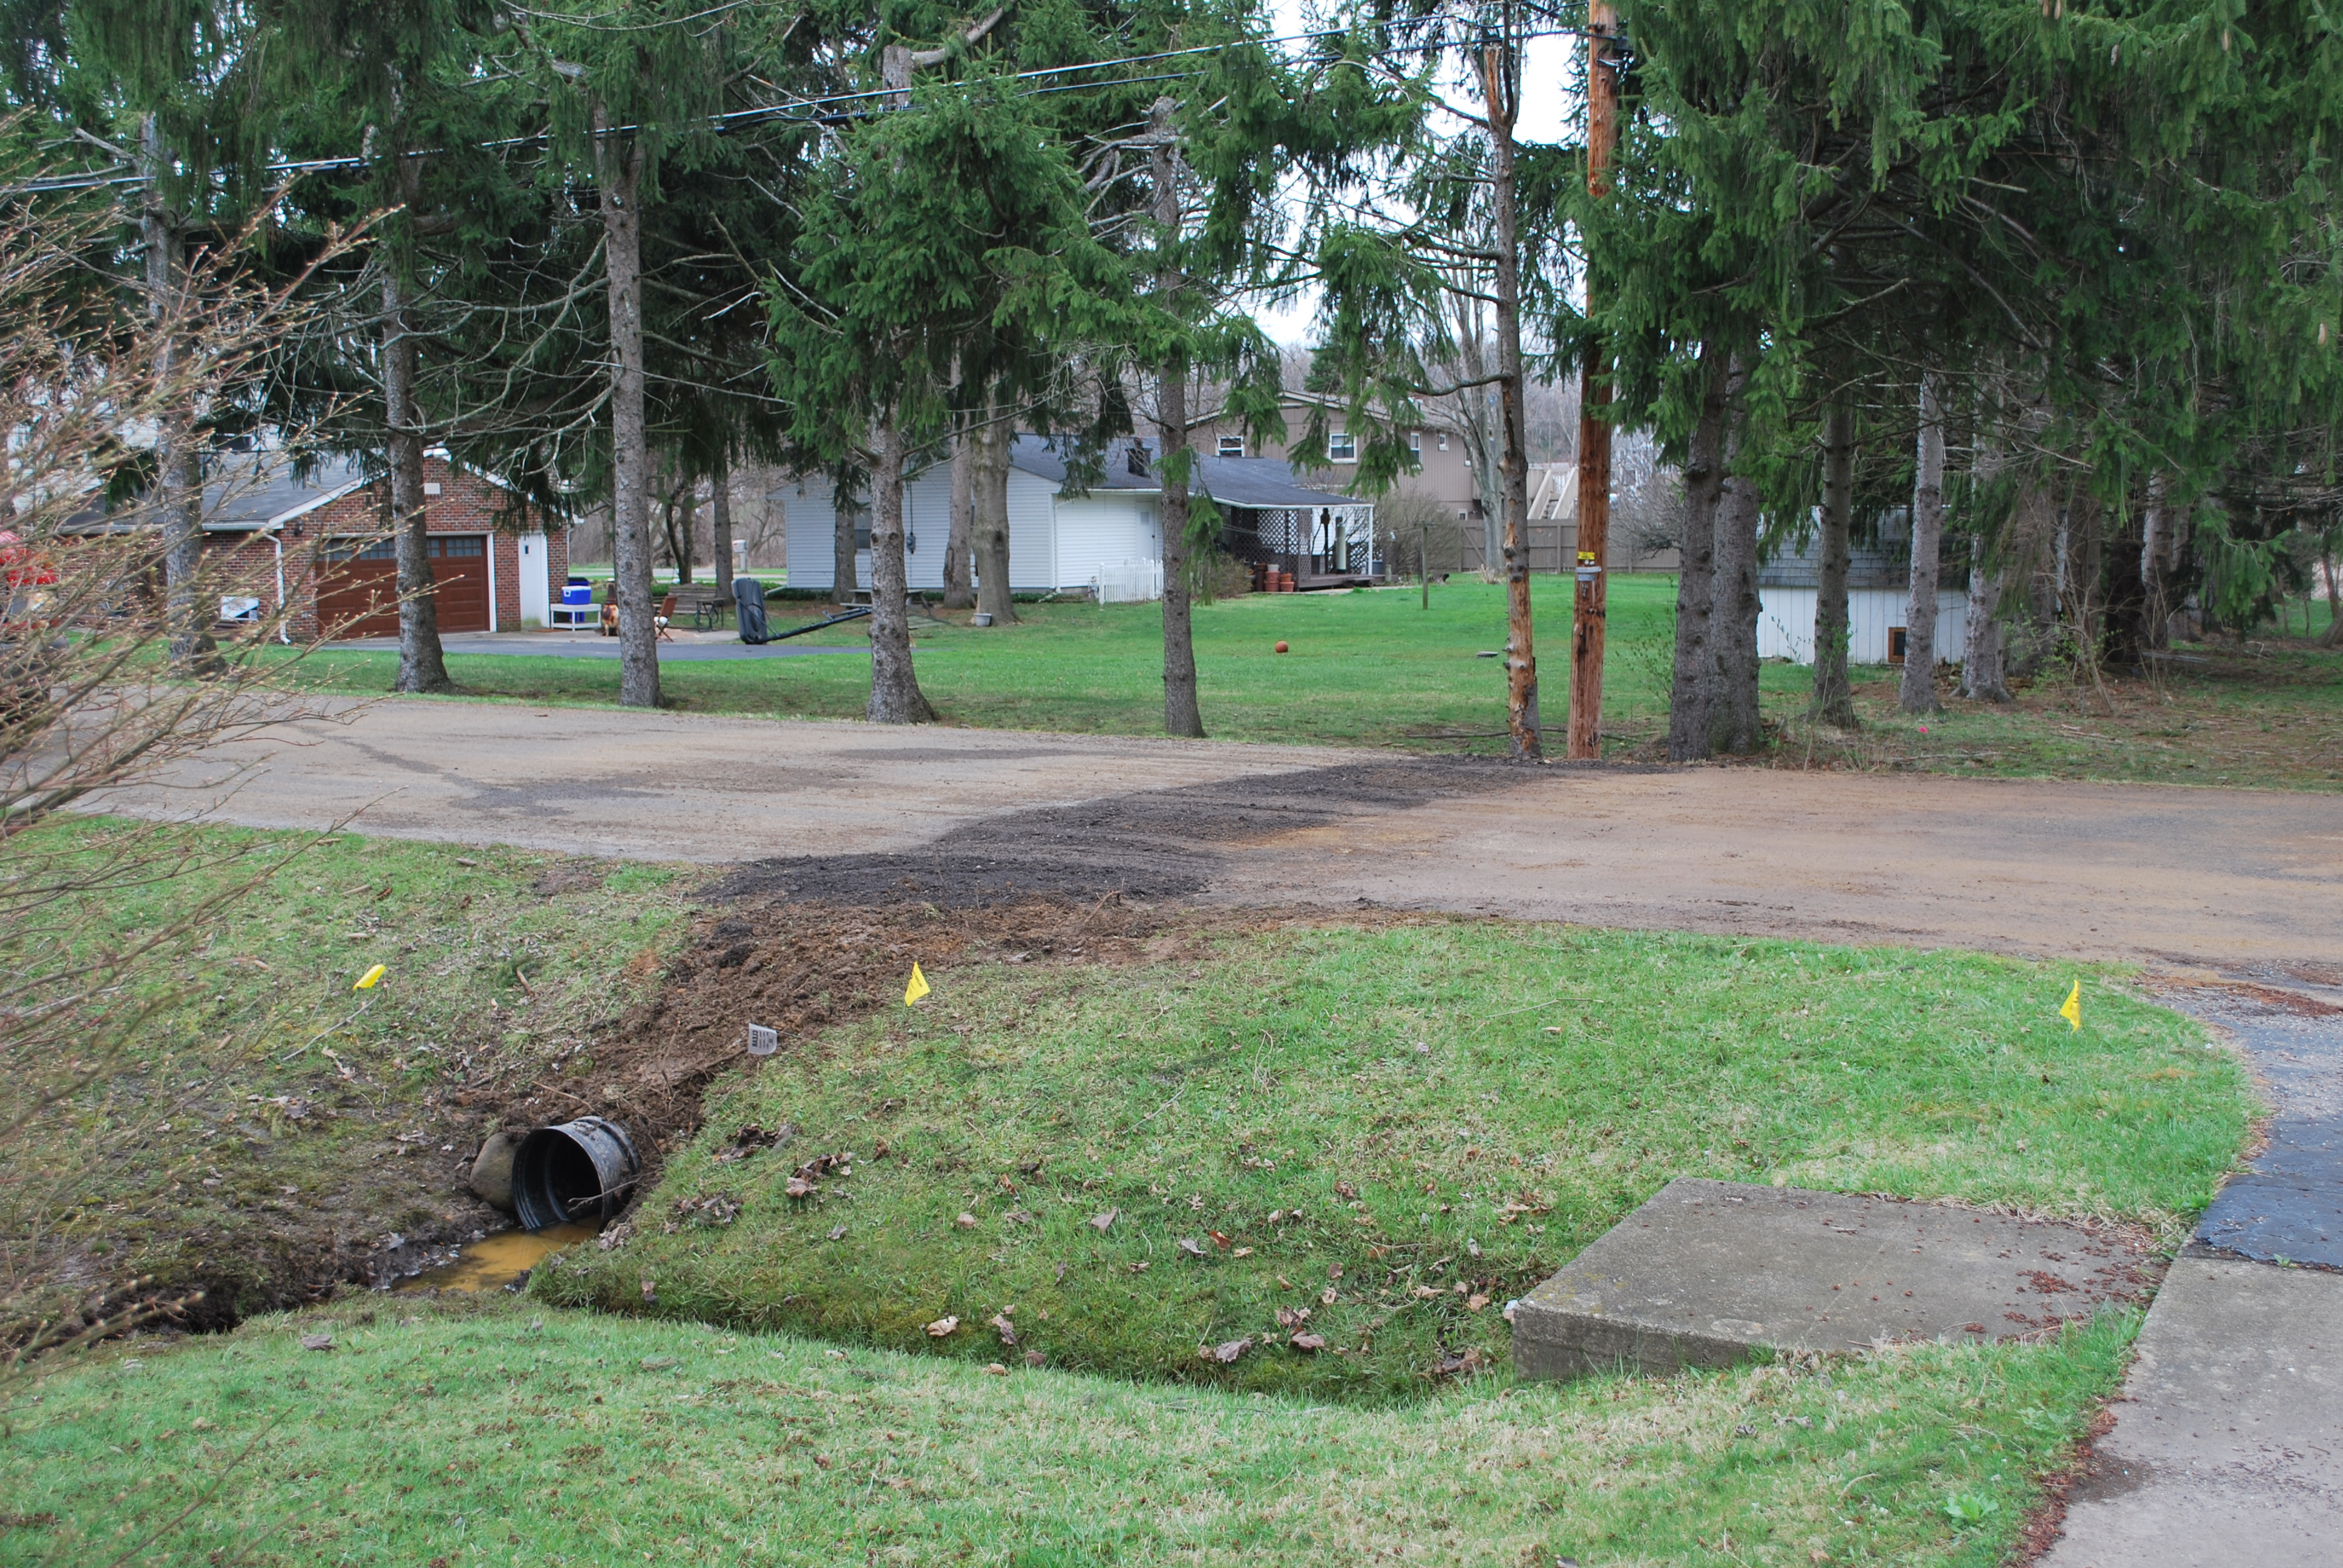 New culvert on Idlewood Drive 04 05 2017